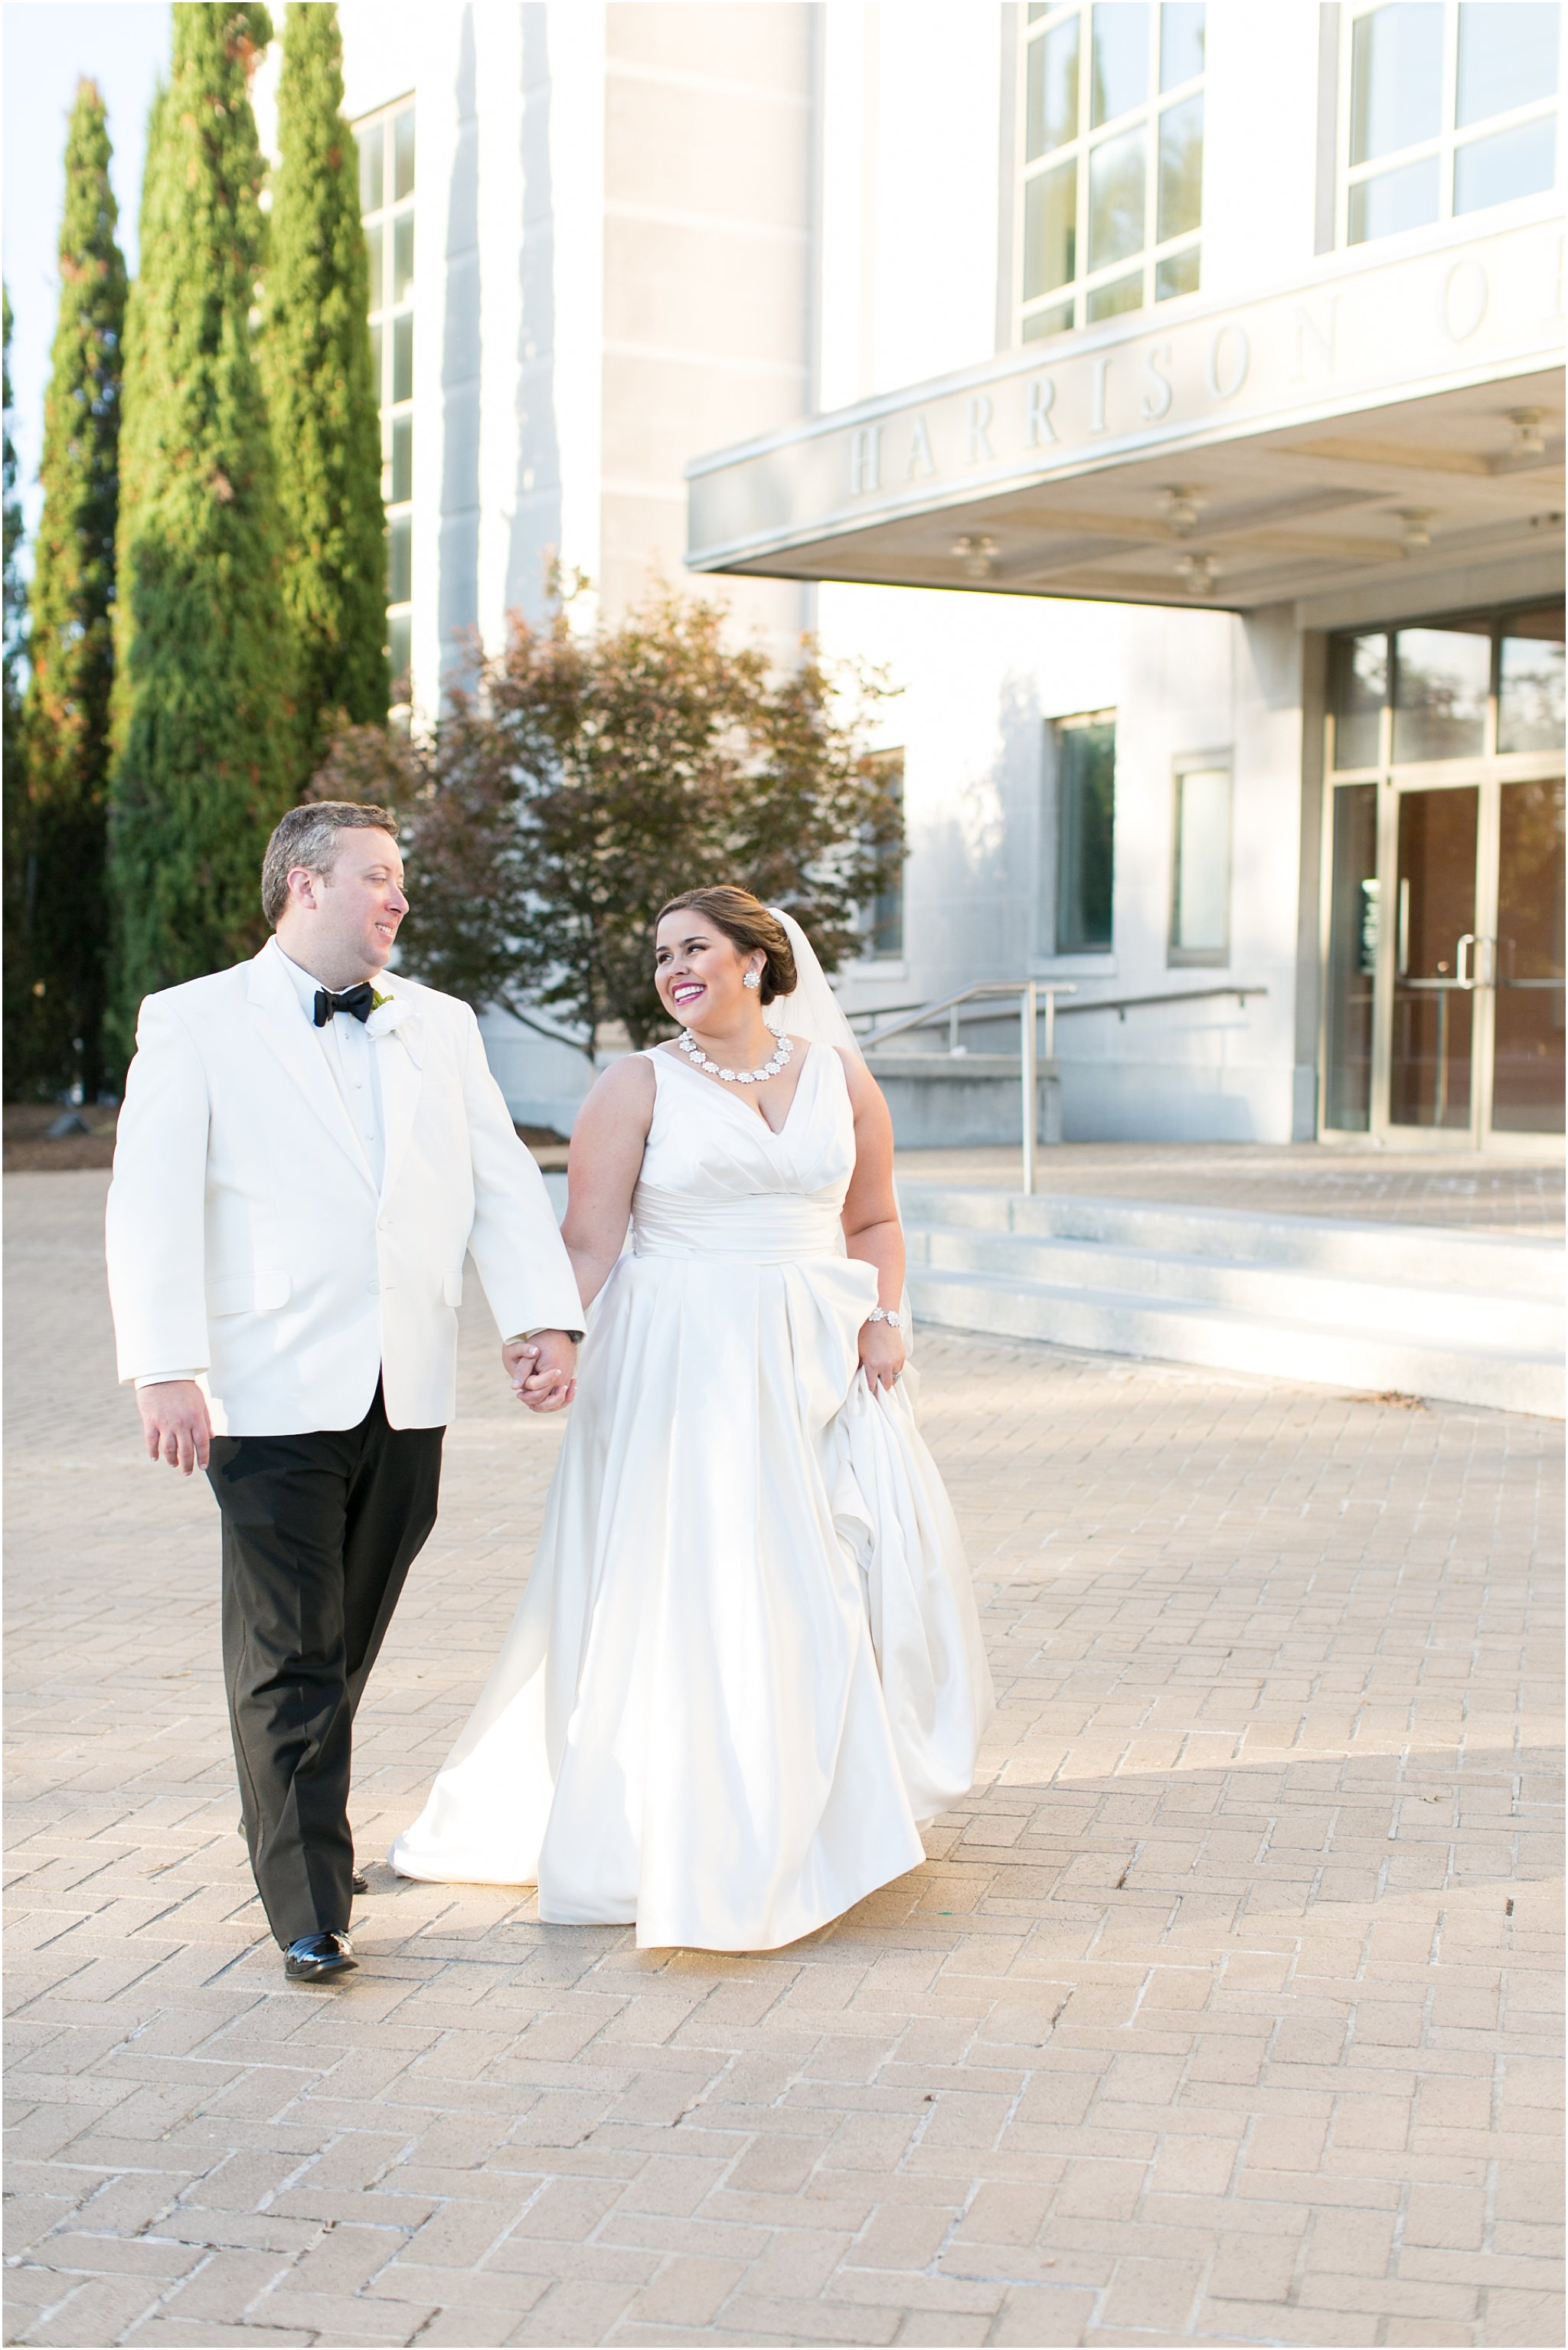 va_jessica_ryan_photography_virginia_wedding_norfolk_harrison_opera_house_norfolk_arts_district_portraits_3808